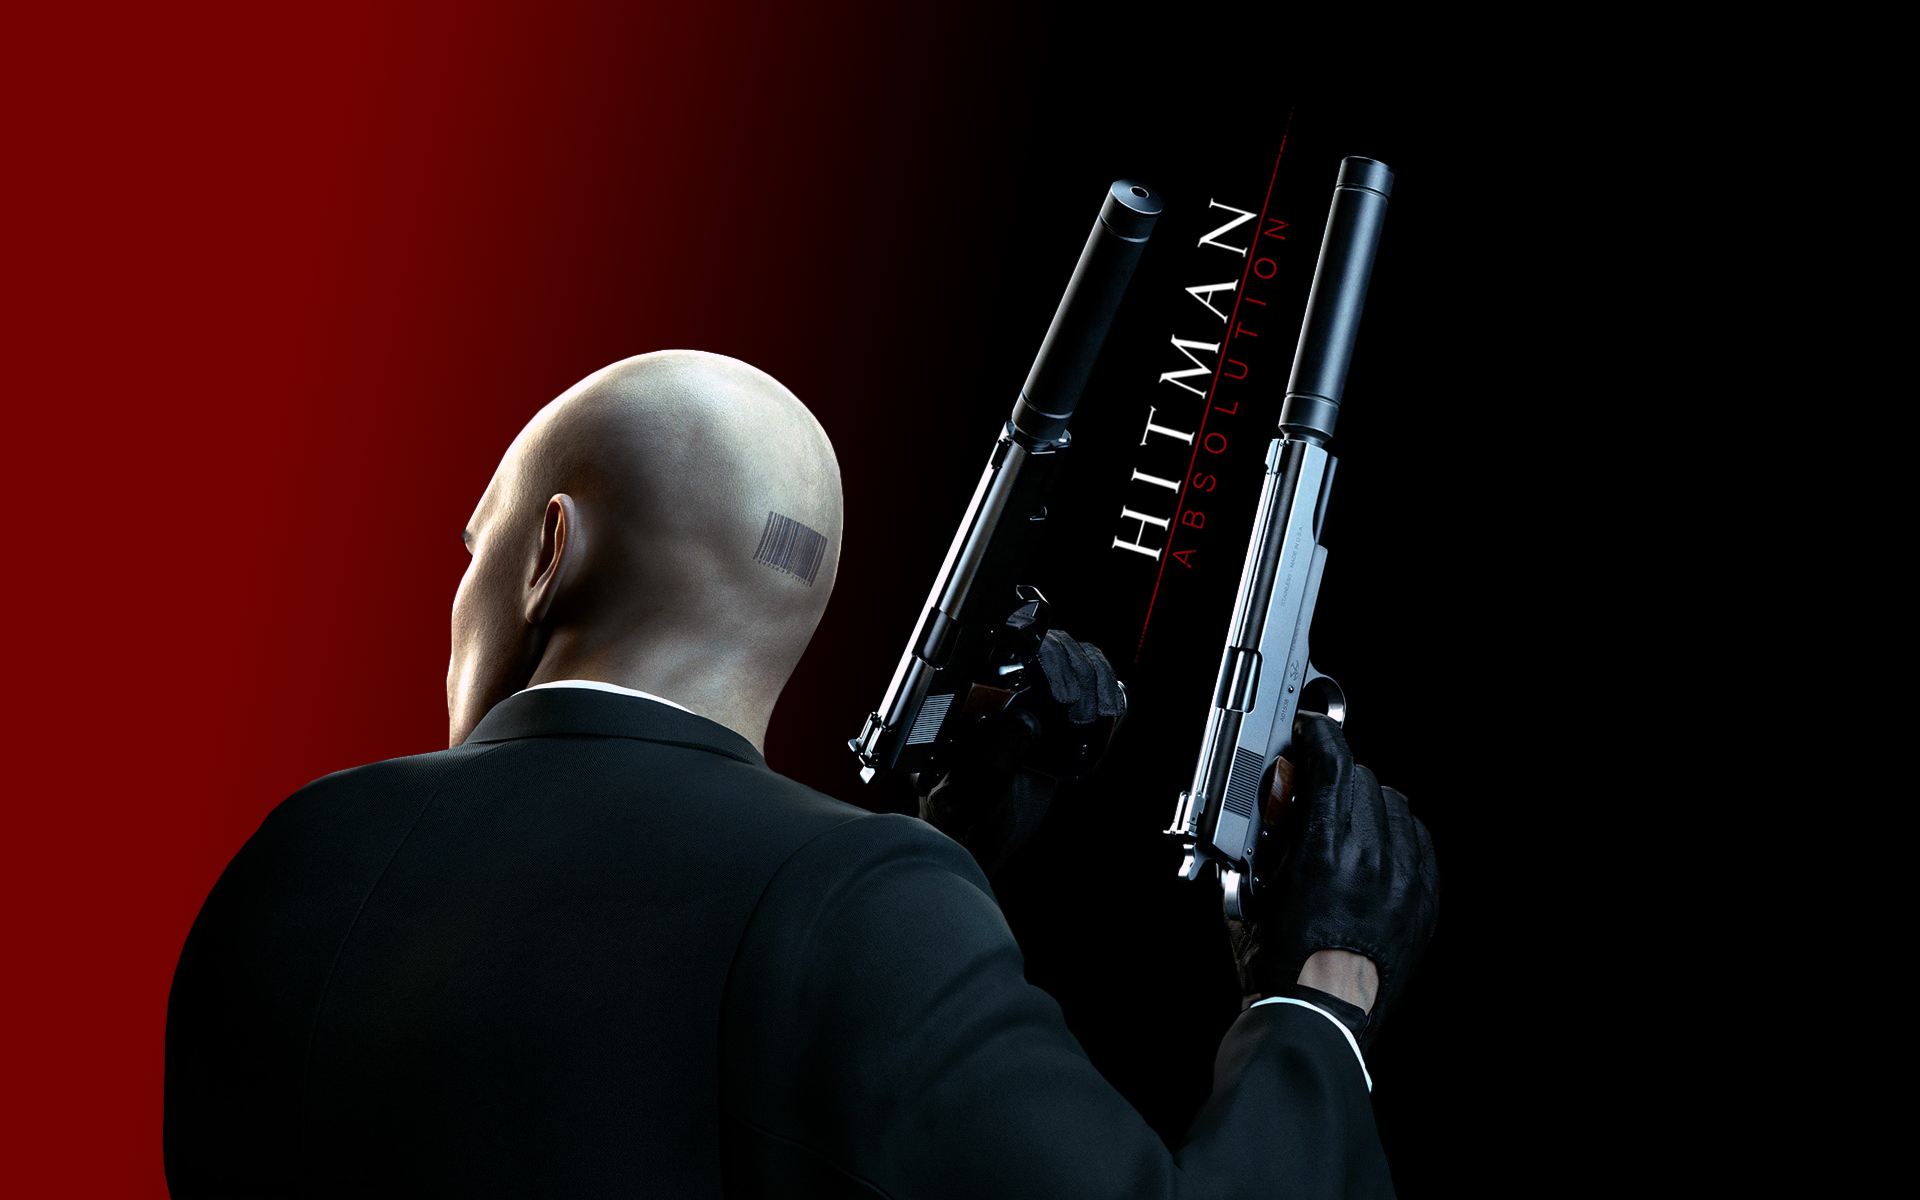 Hitman Absolution Wallpaper by XBullitt68 1920x1200